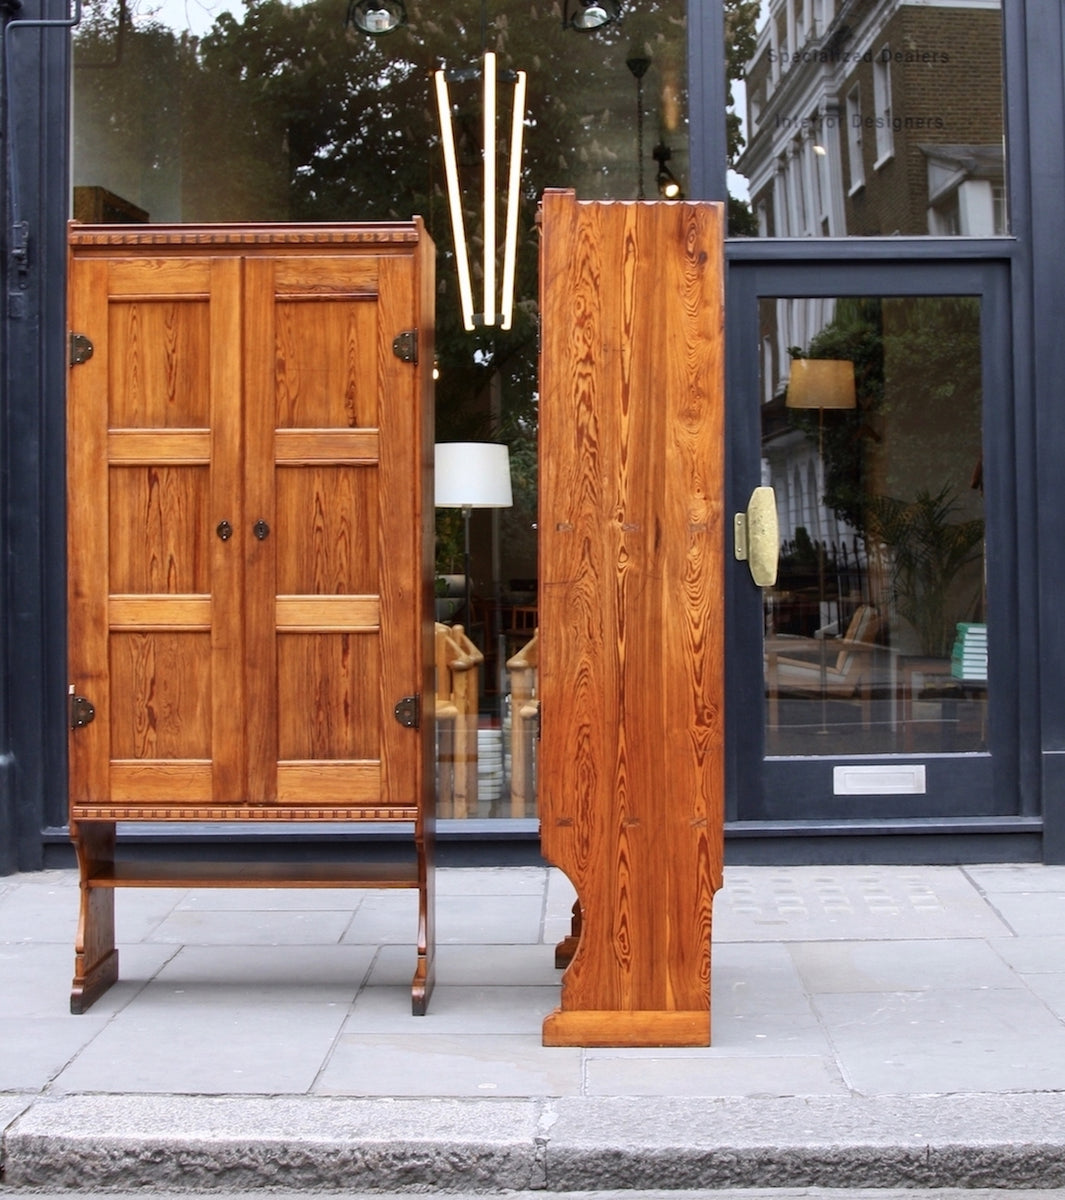 Skønvirke Cabinets Martin Nyrop - skonvirke Danish art nuveau martin nyrup Copenhagen town hall custom made furniture gesamtkunstwerk early 20th century furniture pine patina aged pair of cabinets